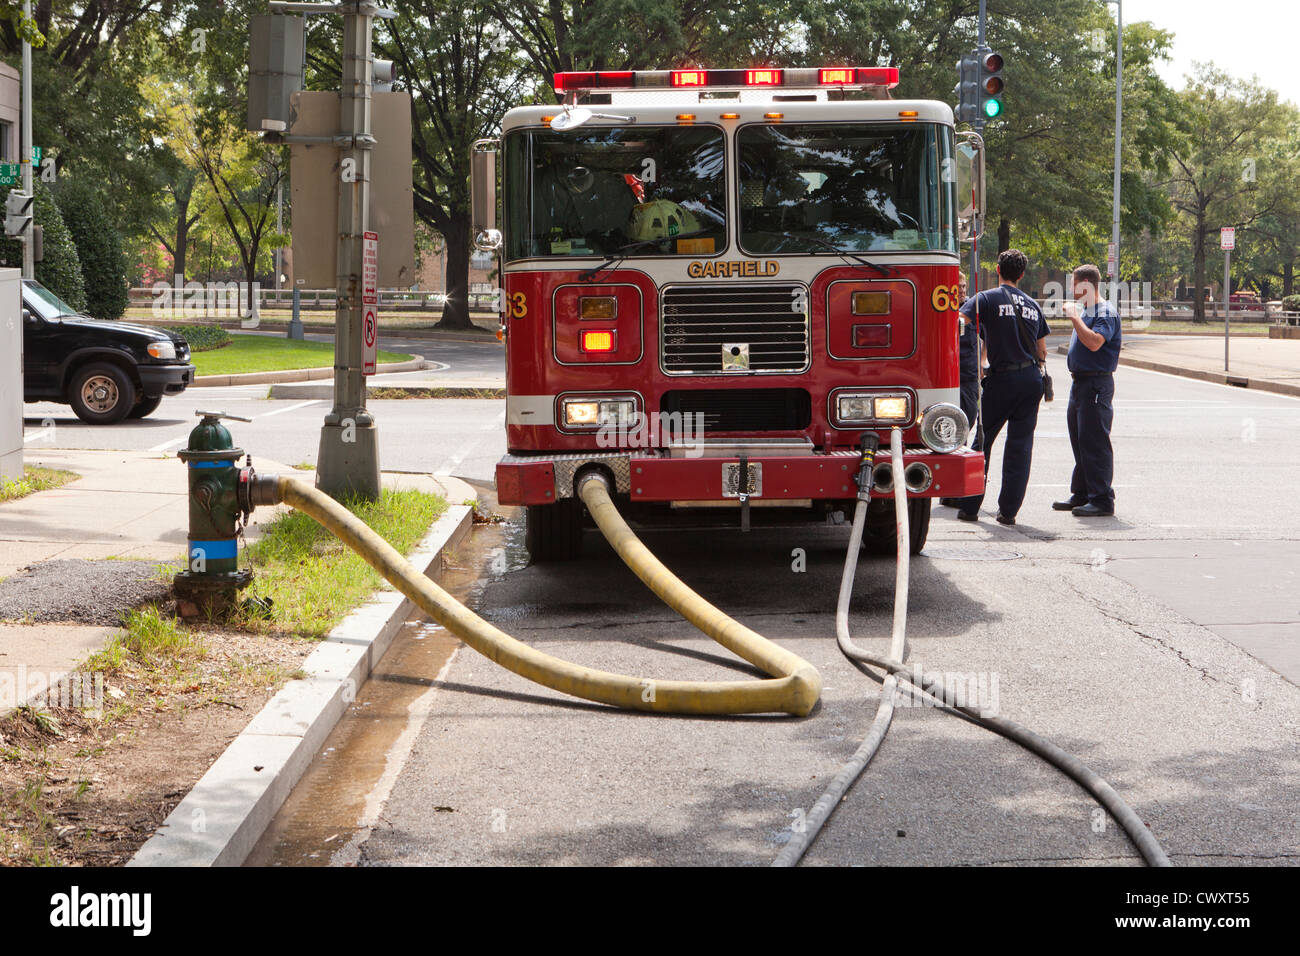 Routine pump check on a firetruck - USA - Stock Image